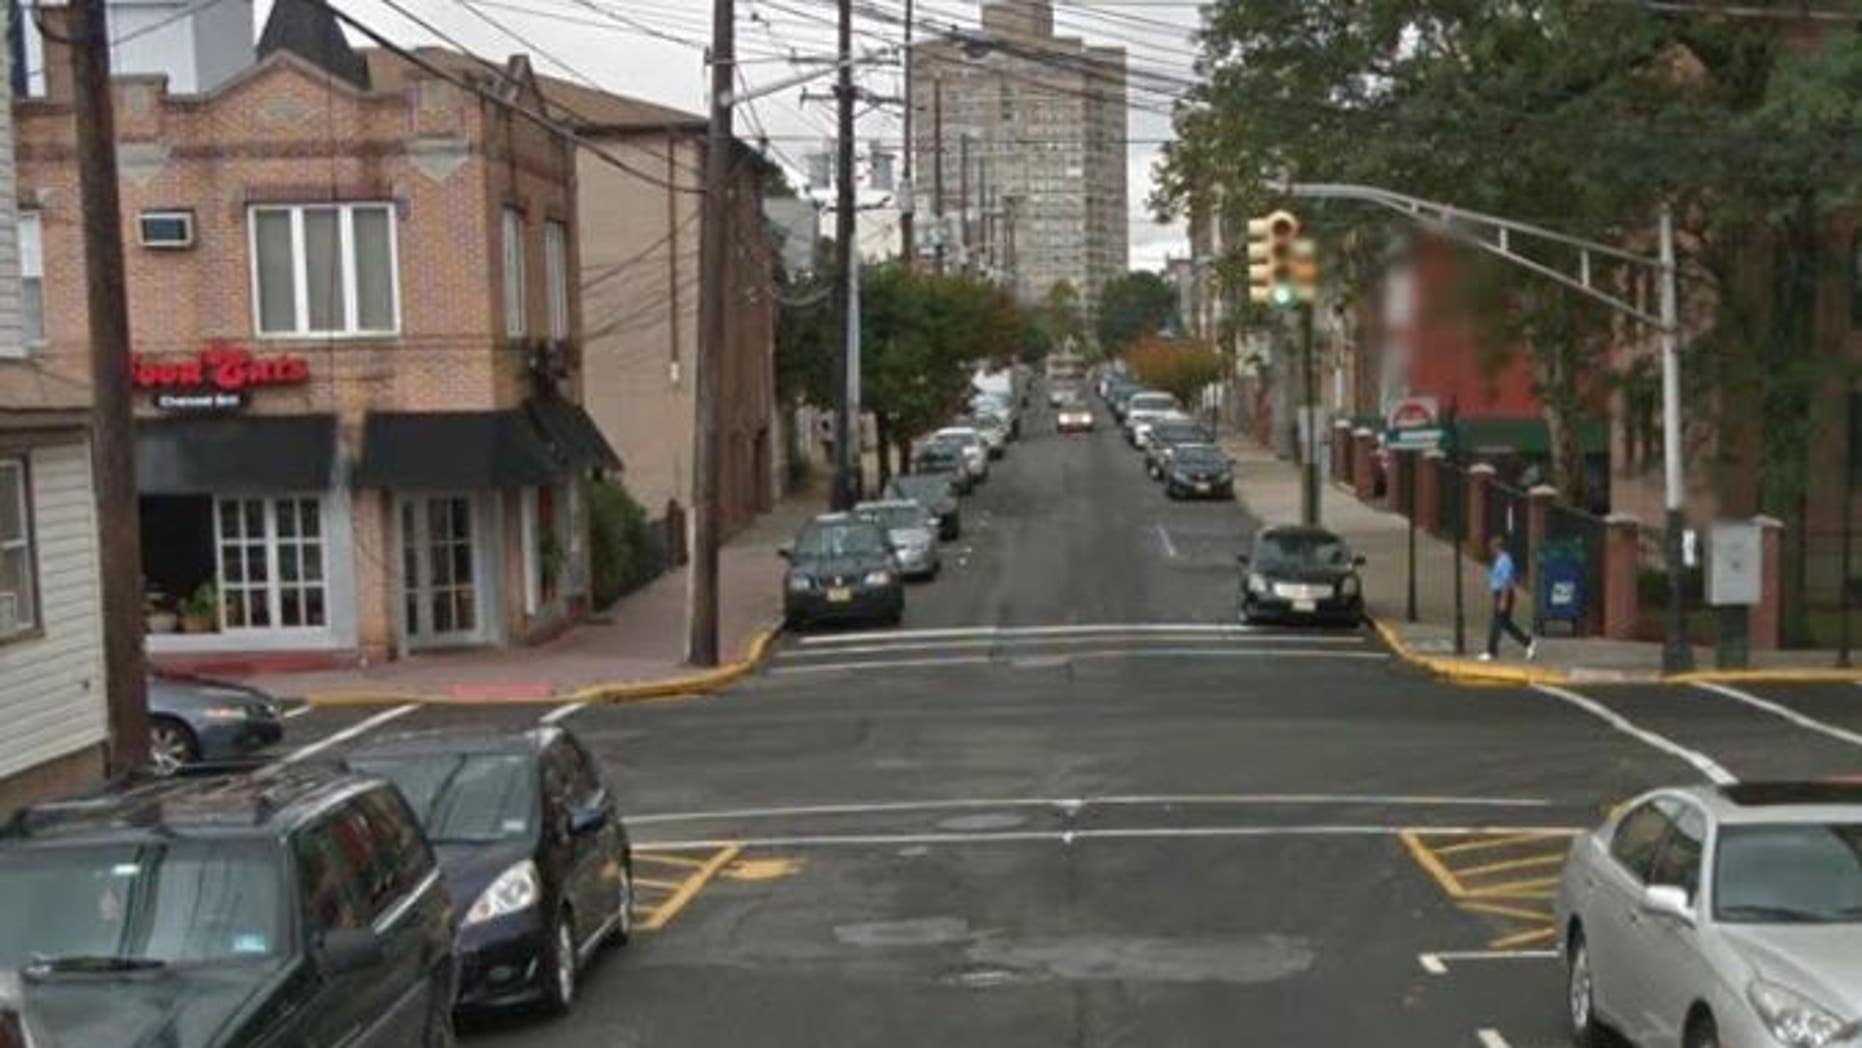 Sebastian Aguilar, 36, was beaten and left for dead in this area by a group of suspected teenagers, police said.